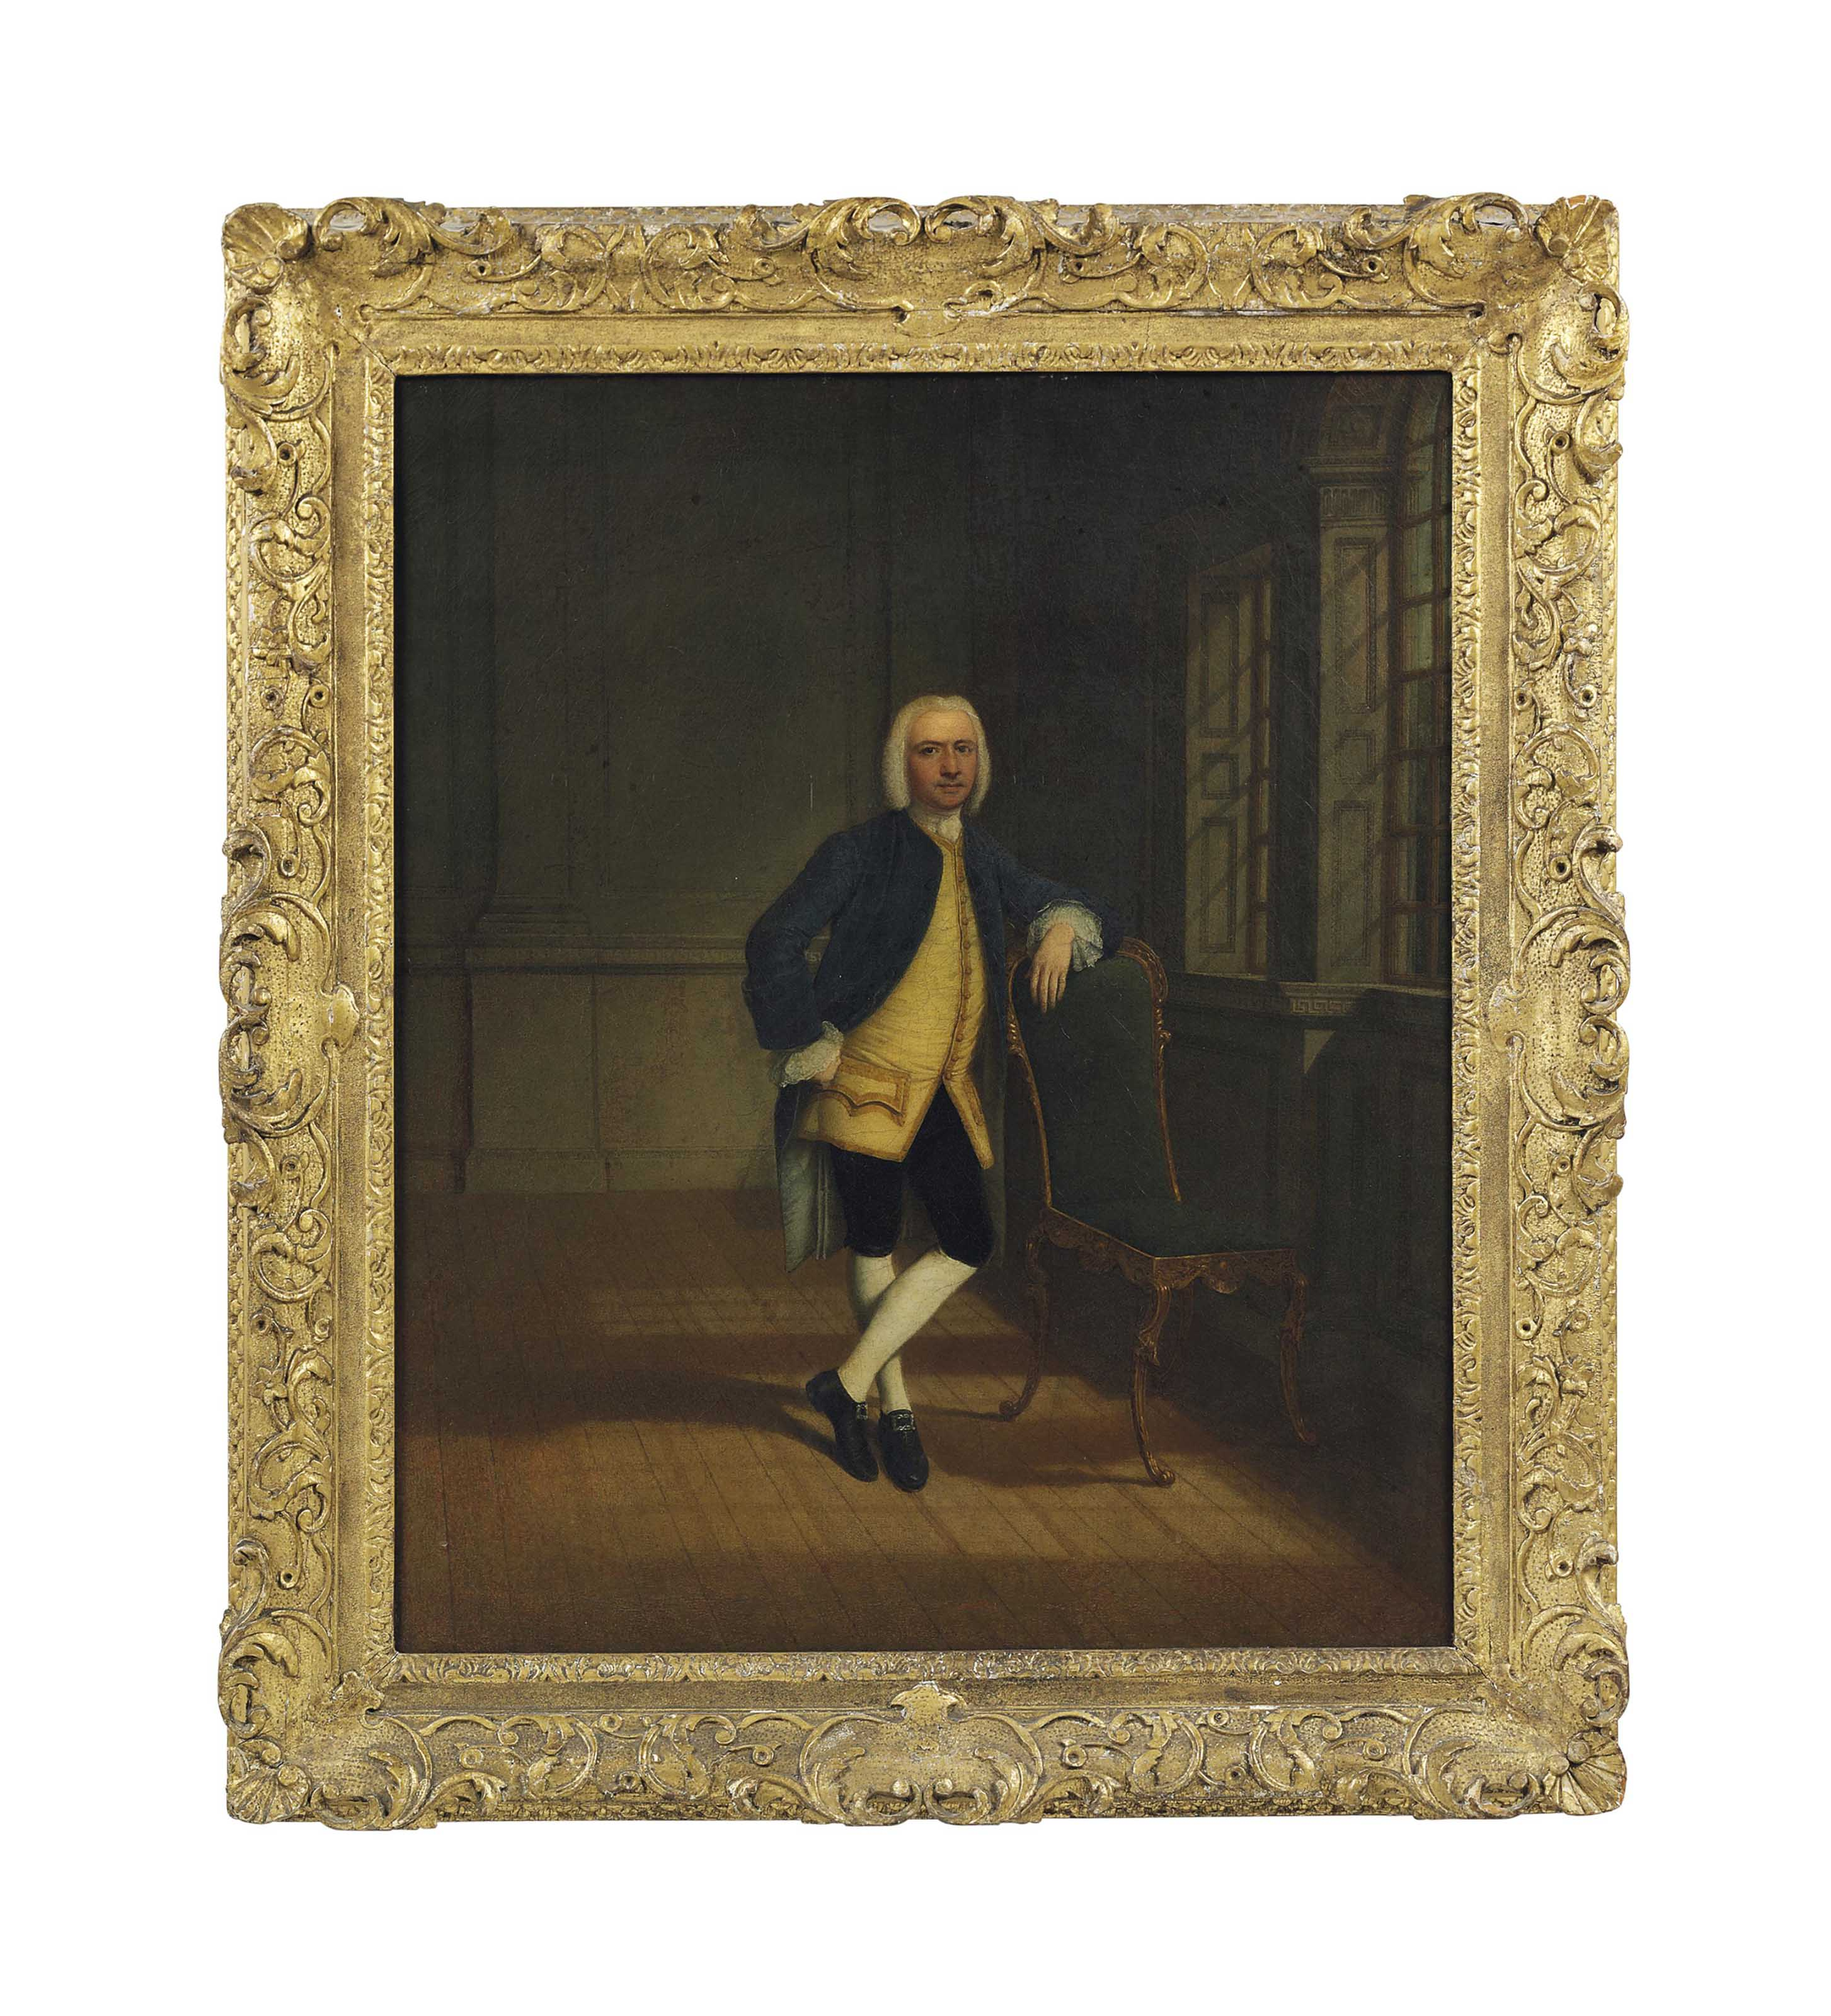 Portrait of a gentleman, small full-length, wearing a blue coat, in an interior